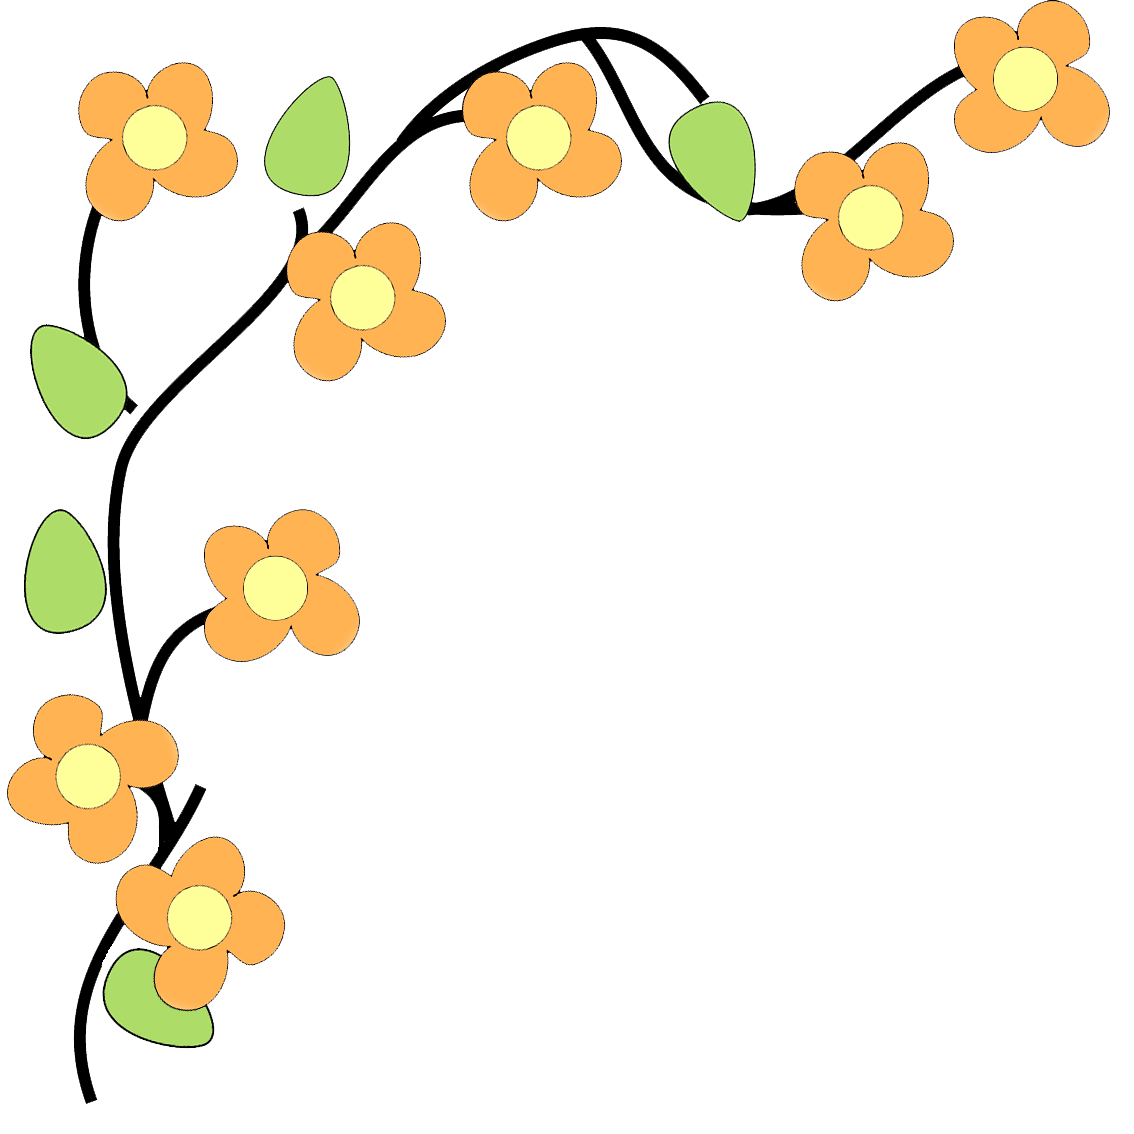 Yellow Flower clipart floral corner Free Free Floral Useful Image